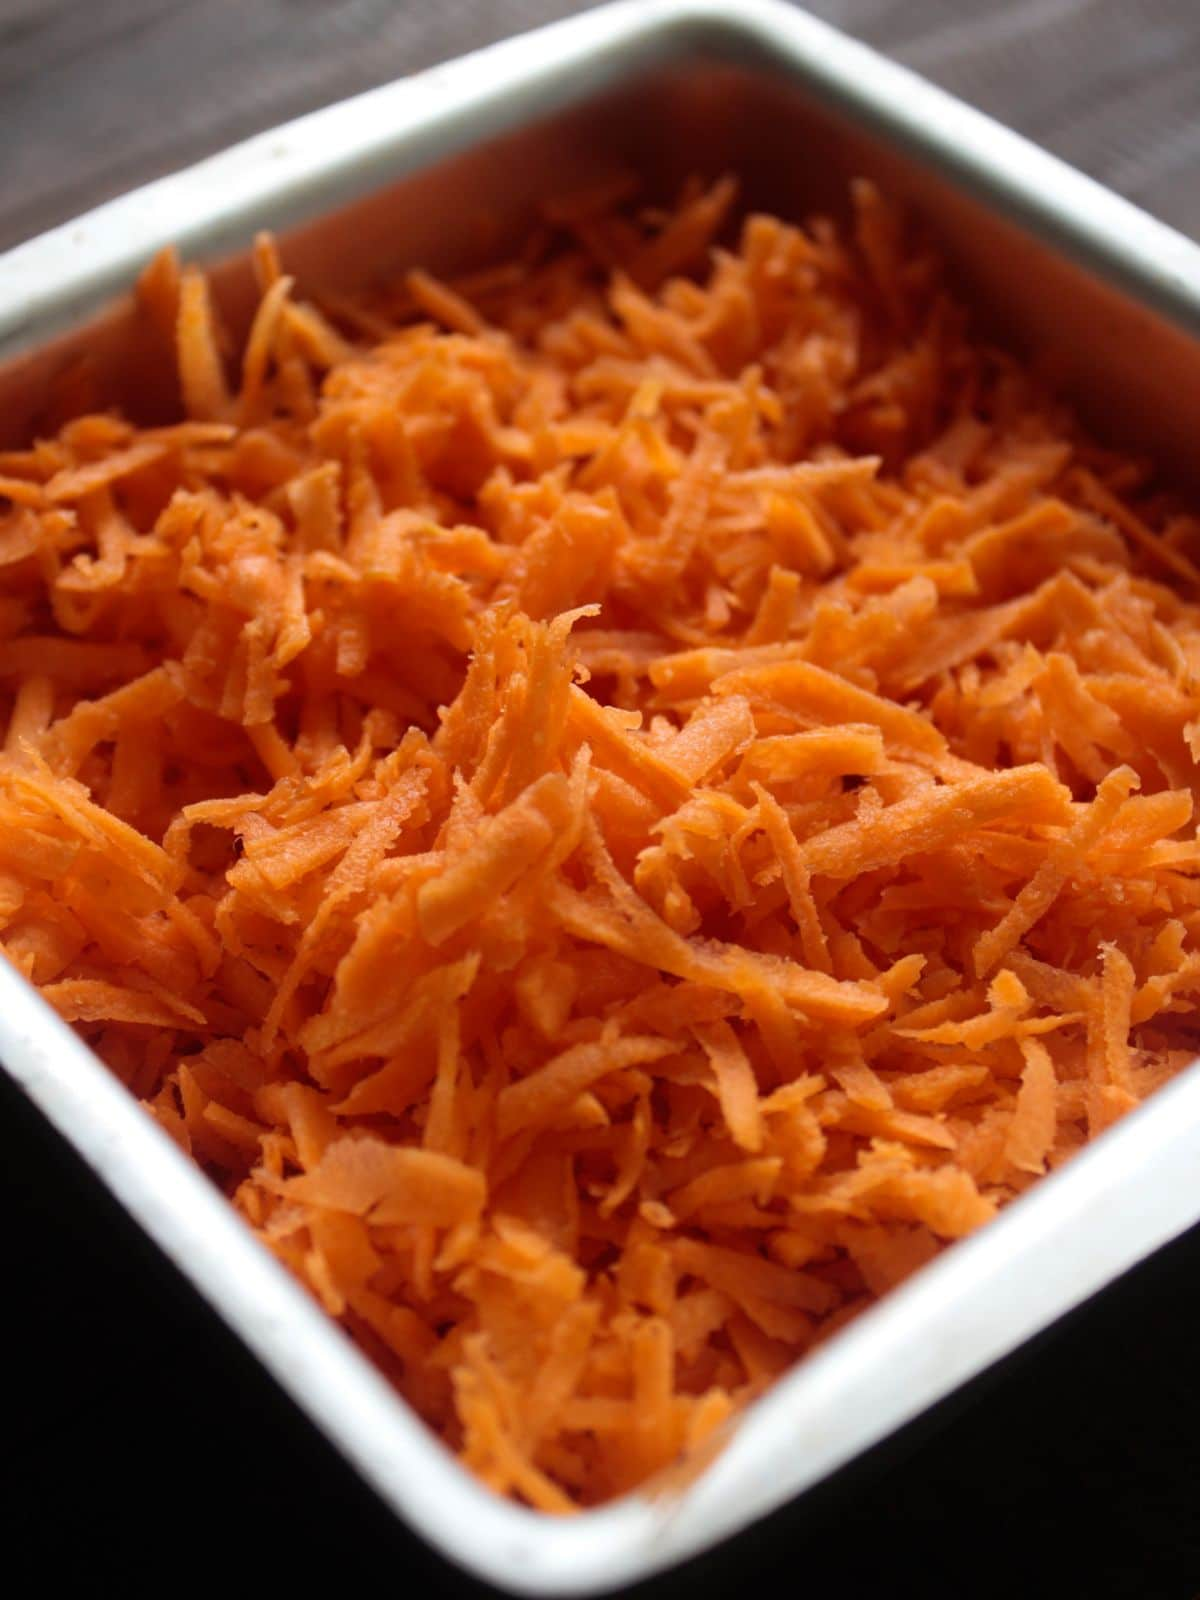 Large square white bowl filled with shredded carrots